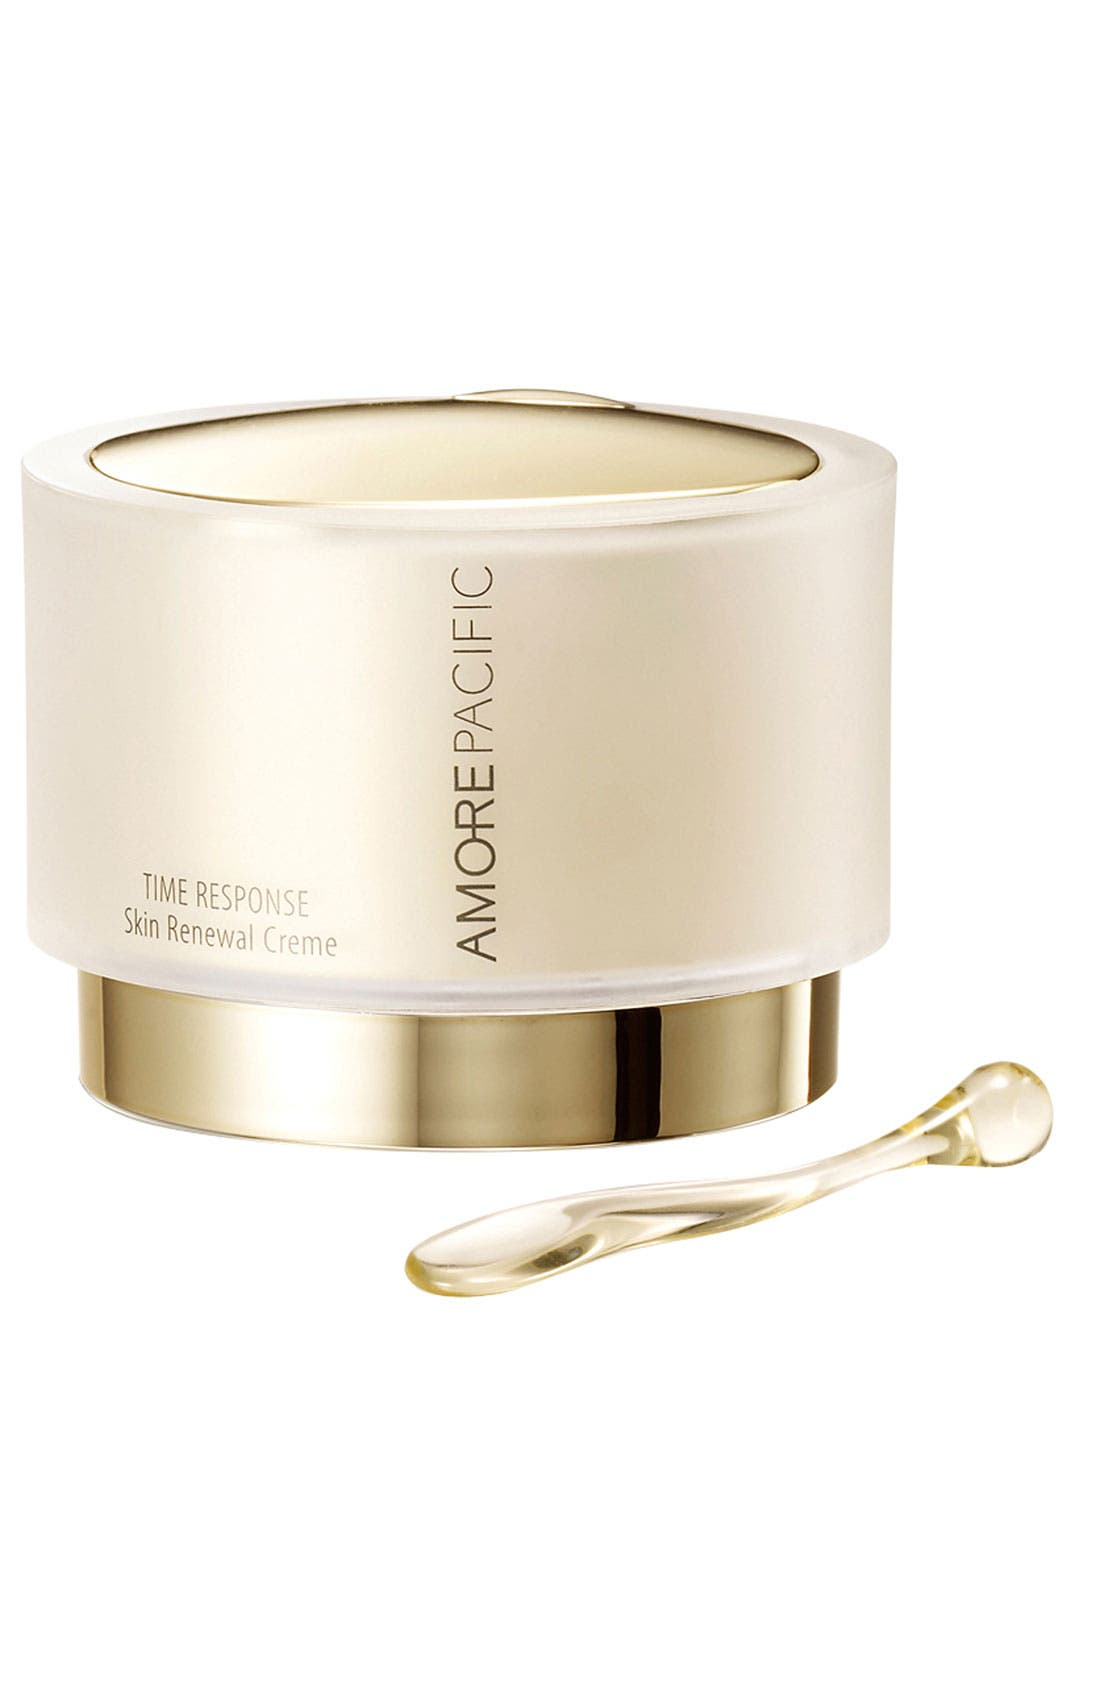 Time Response Skin Renewal Crème,                         Main,                         color,